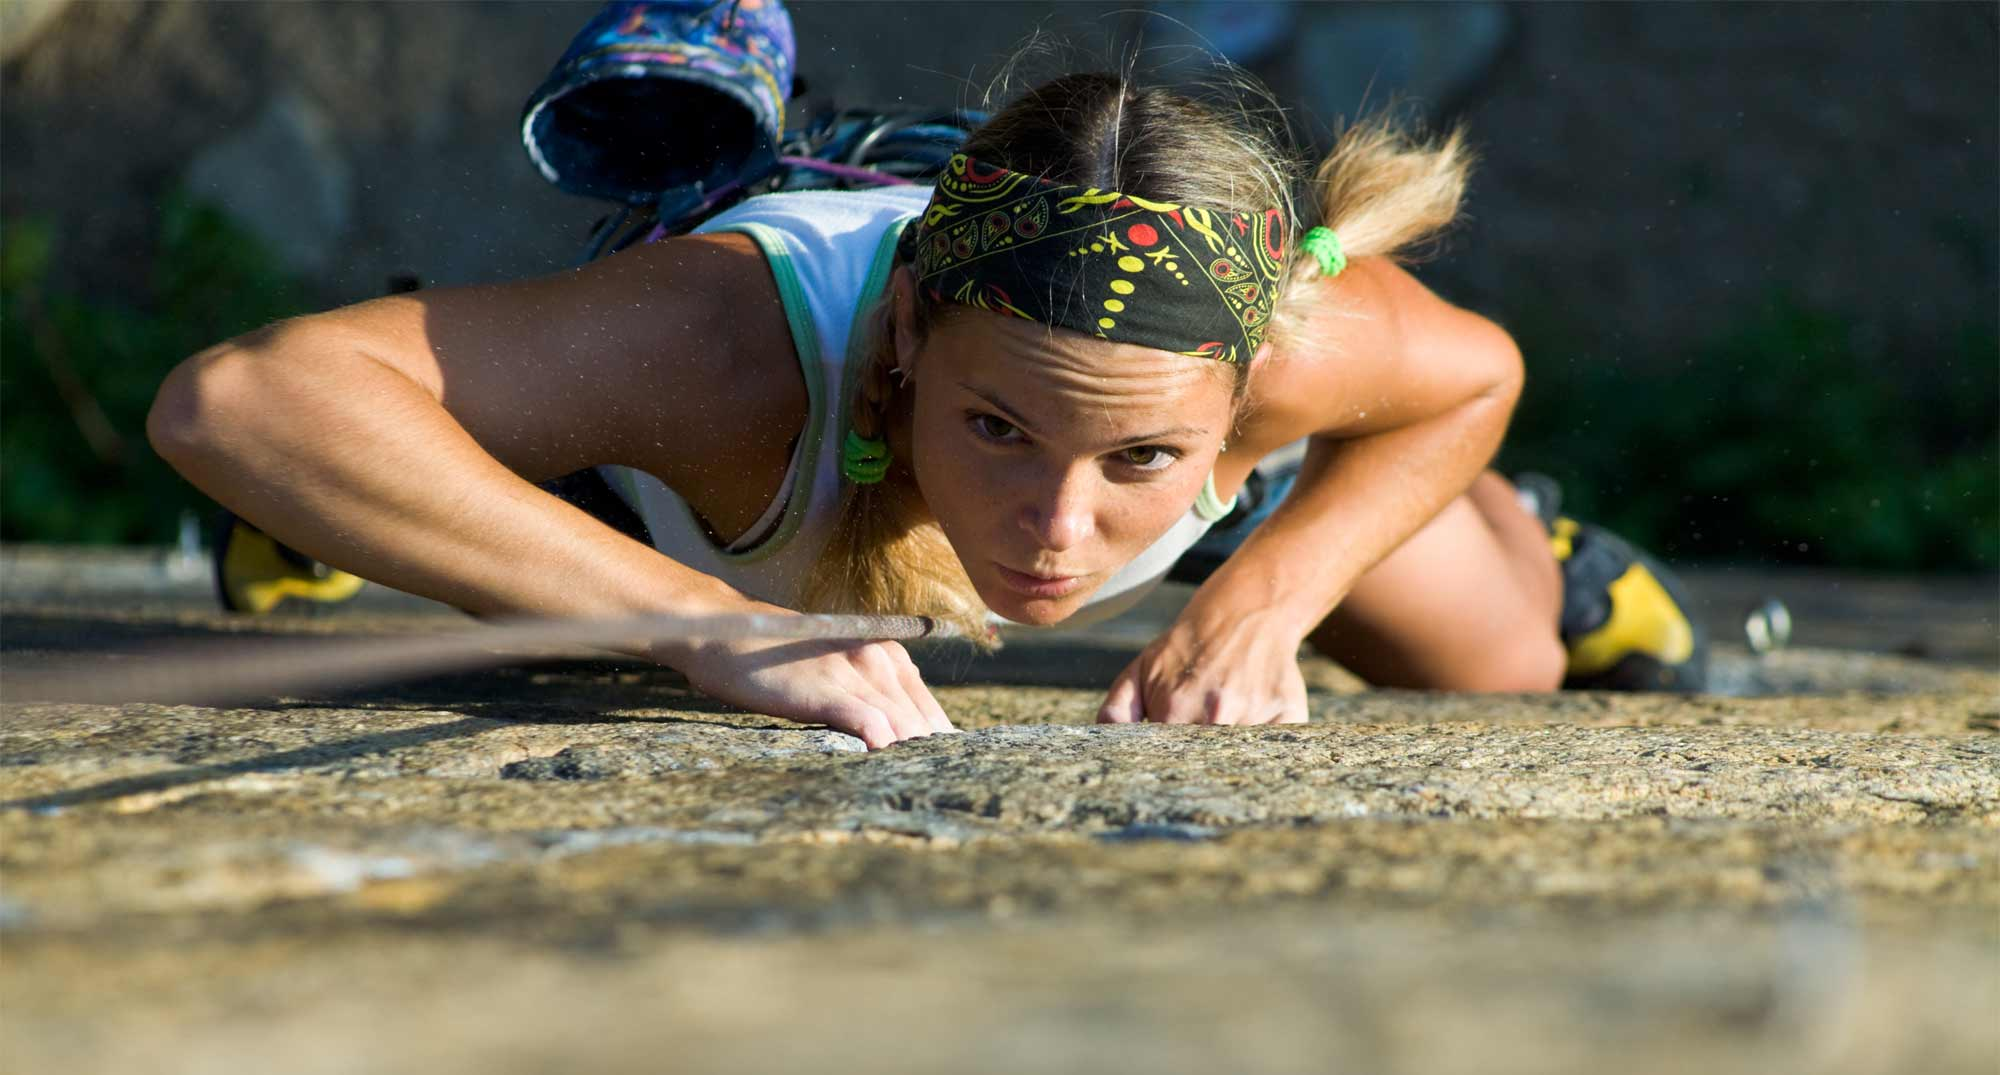 FITNESS: Motivation to Exercise